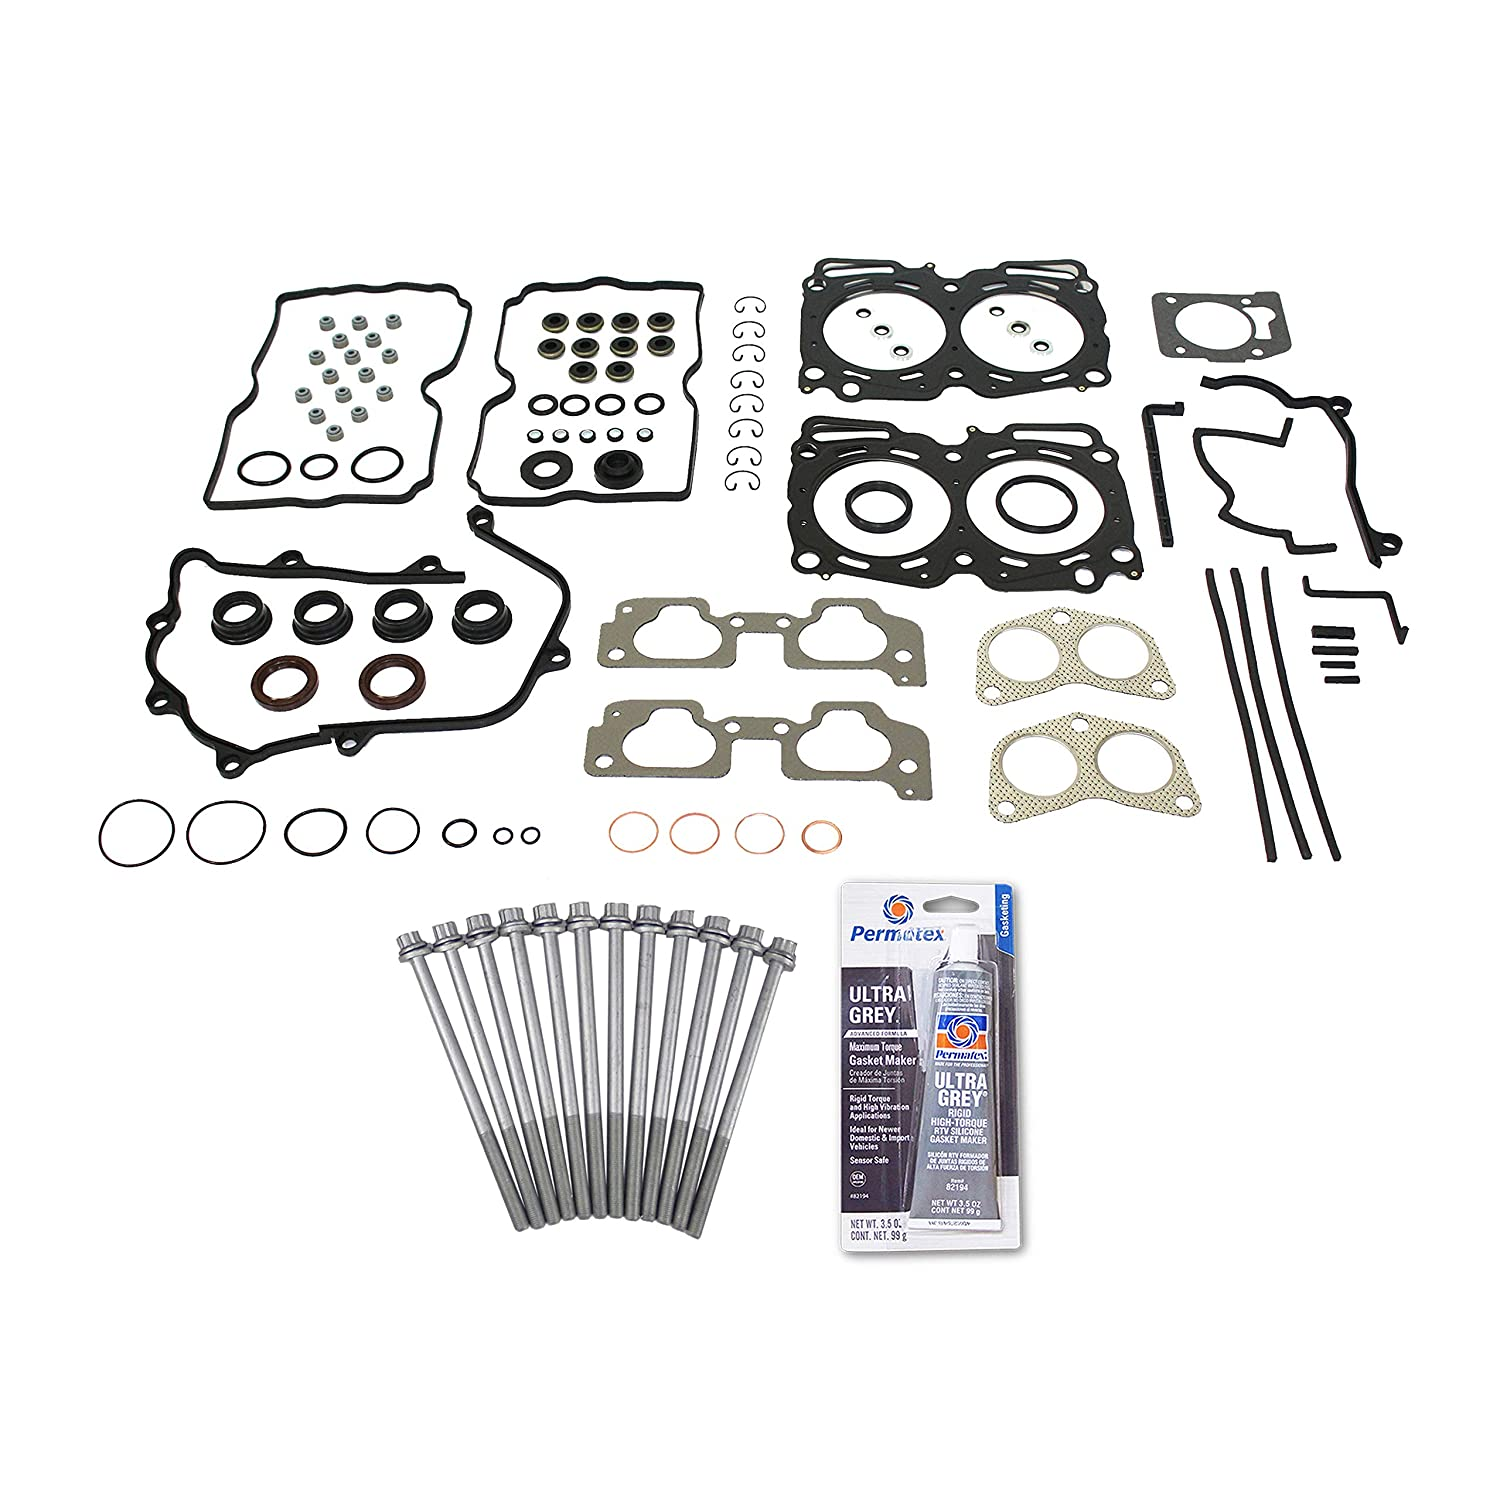 Vincos MLS Head Gasket Replacement For 99-10 Subaru Forester Impreza Legacy Outback 2.5L EJ25